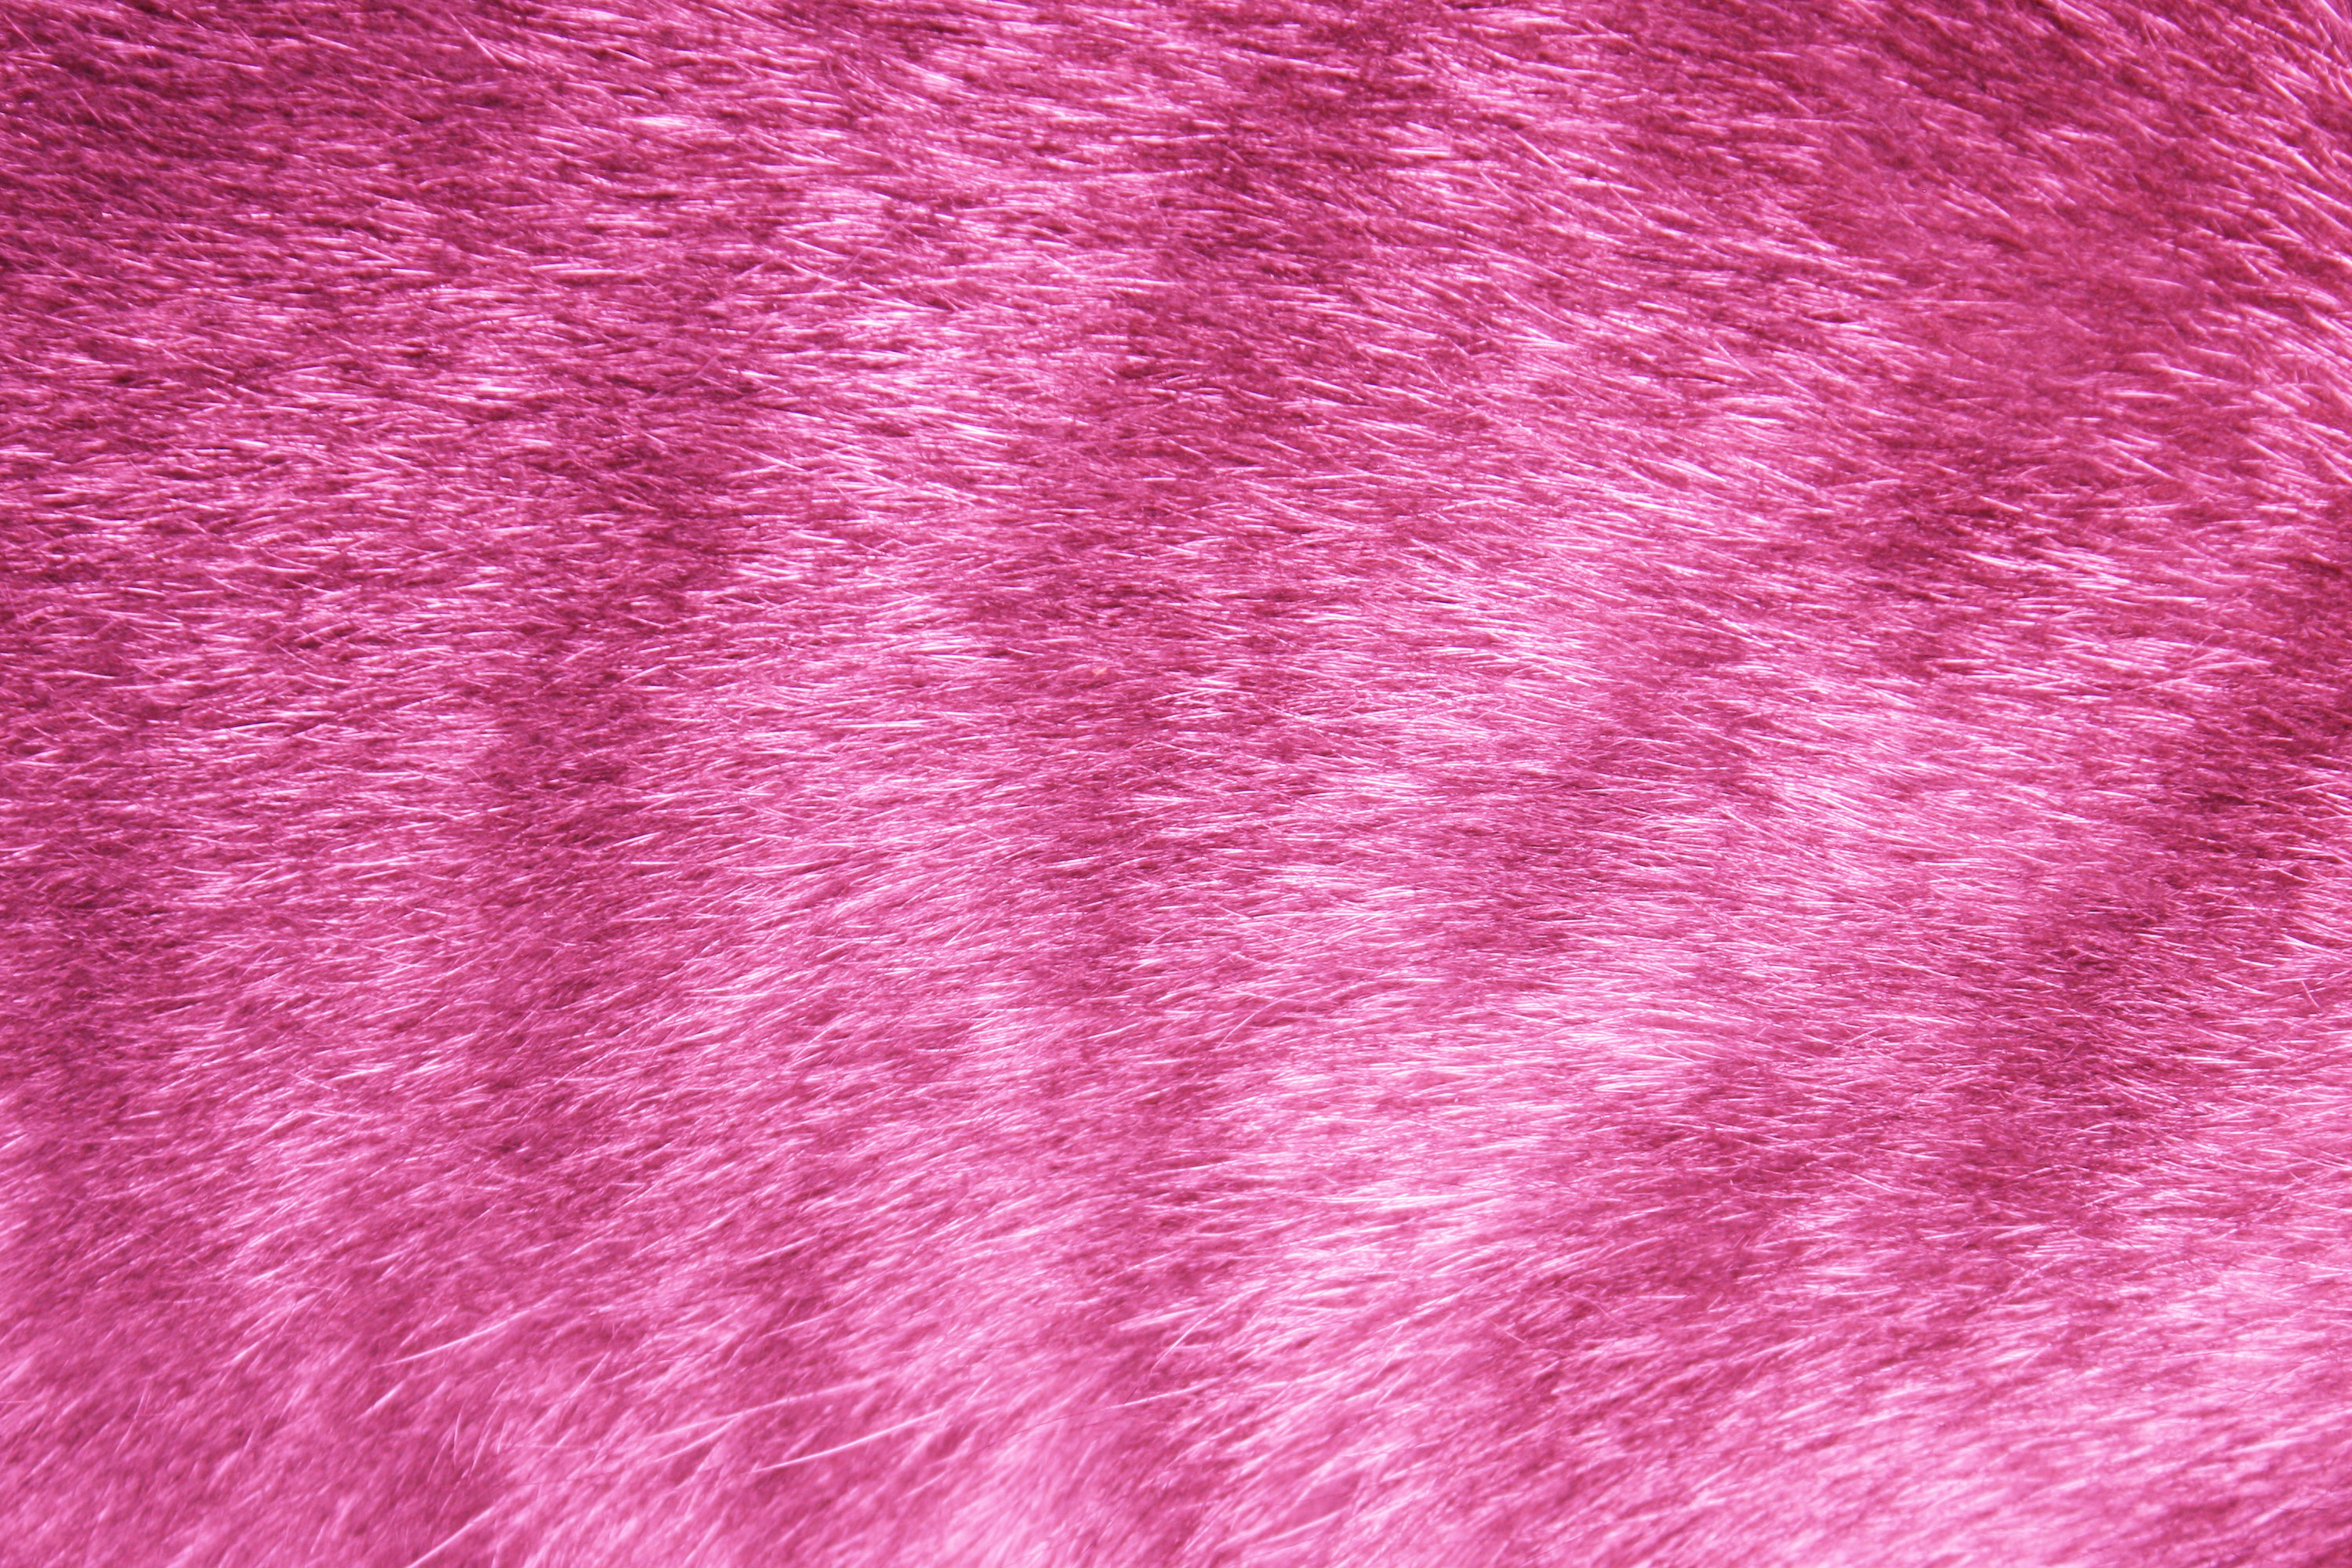 Pink Fur Wallpaper Wallpapersafari